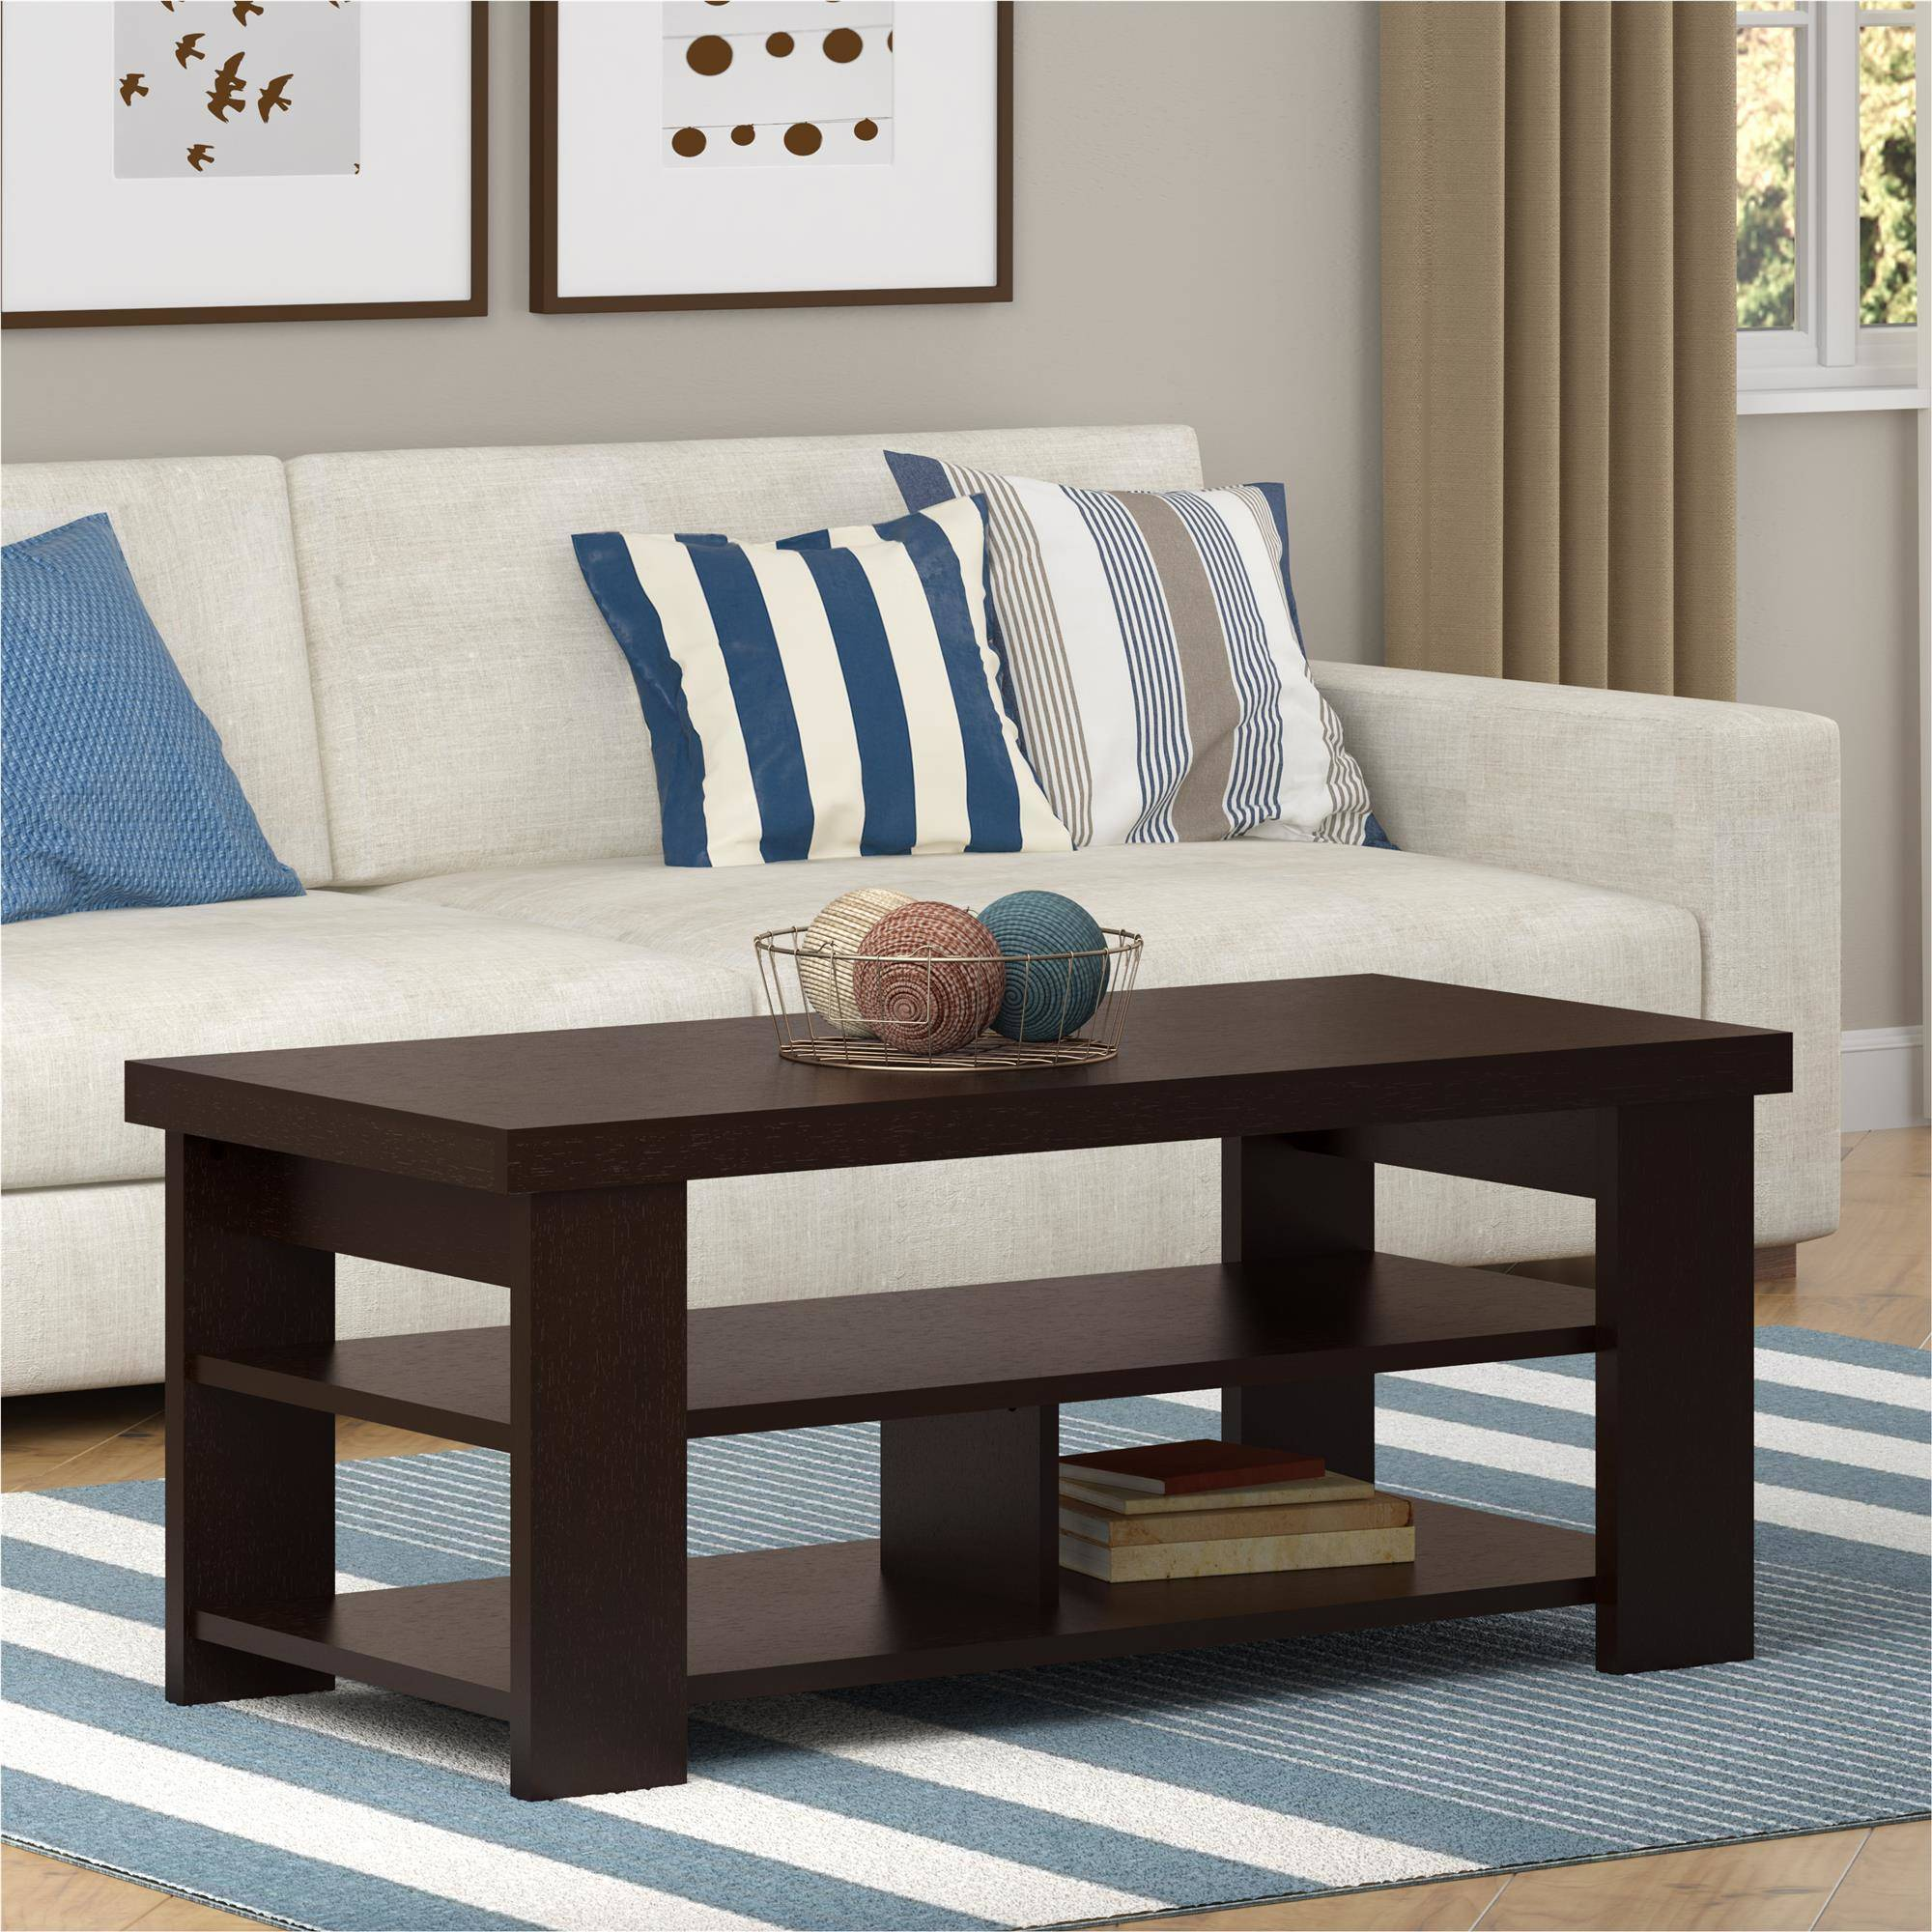 ... Picture 2 of 7 ... & Ameriwood Hollow Core Contemporary Coffee Table Medium Black Forest ...